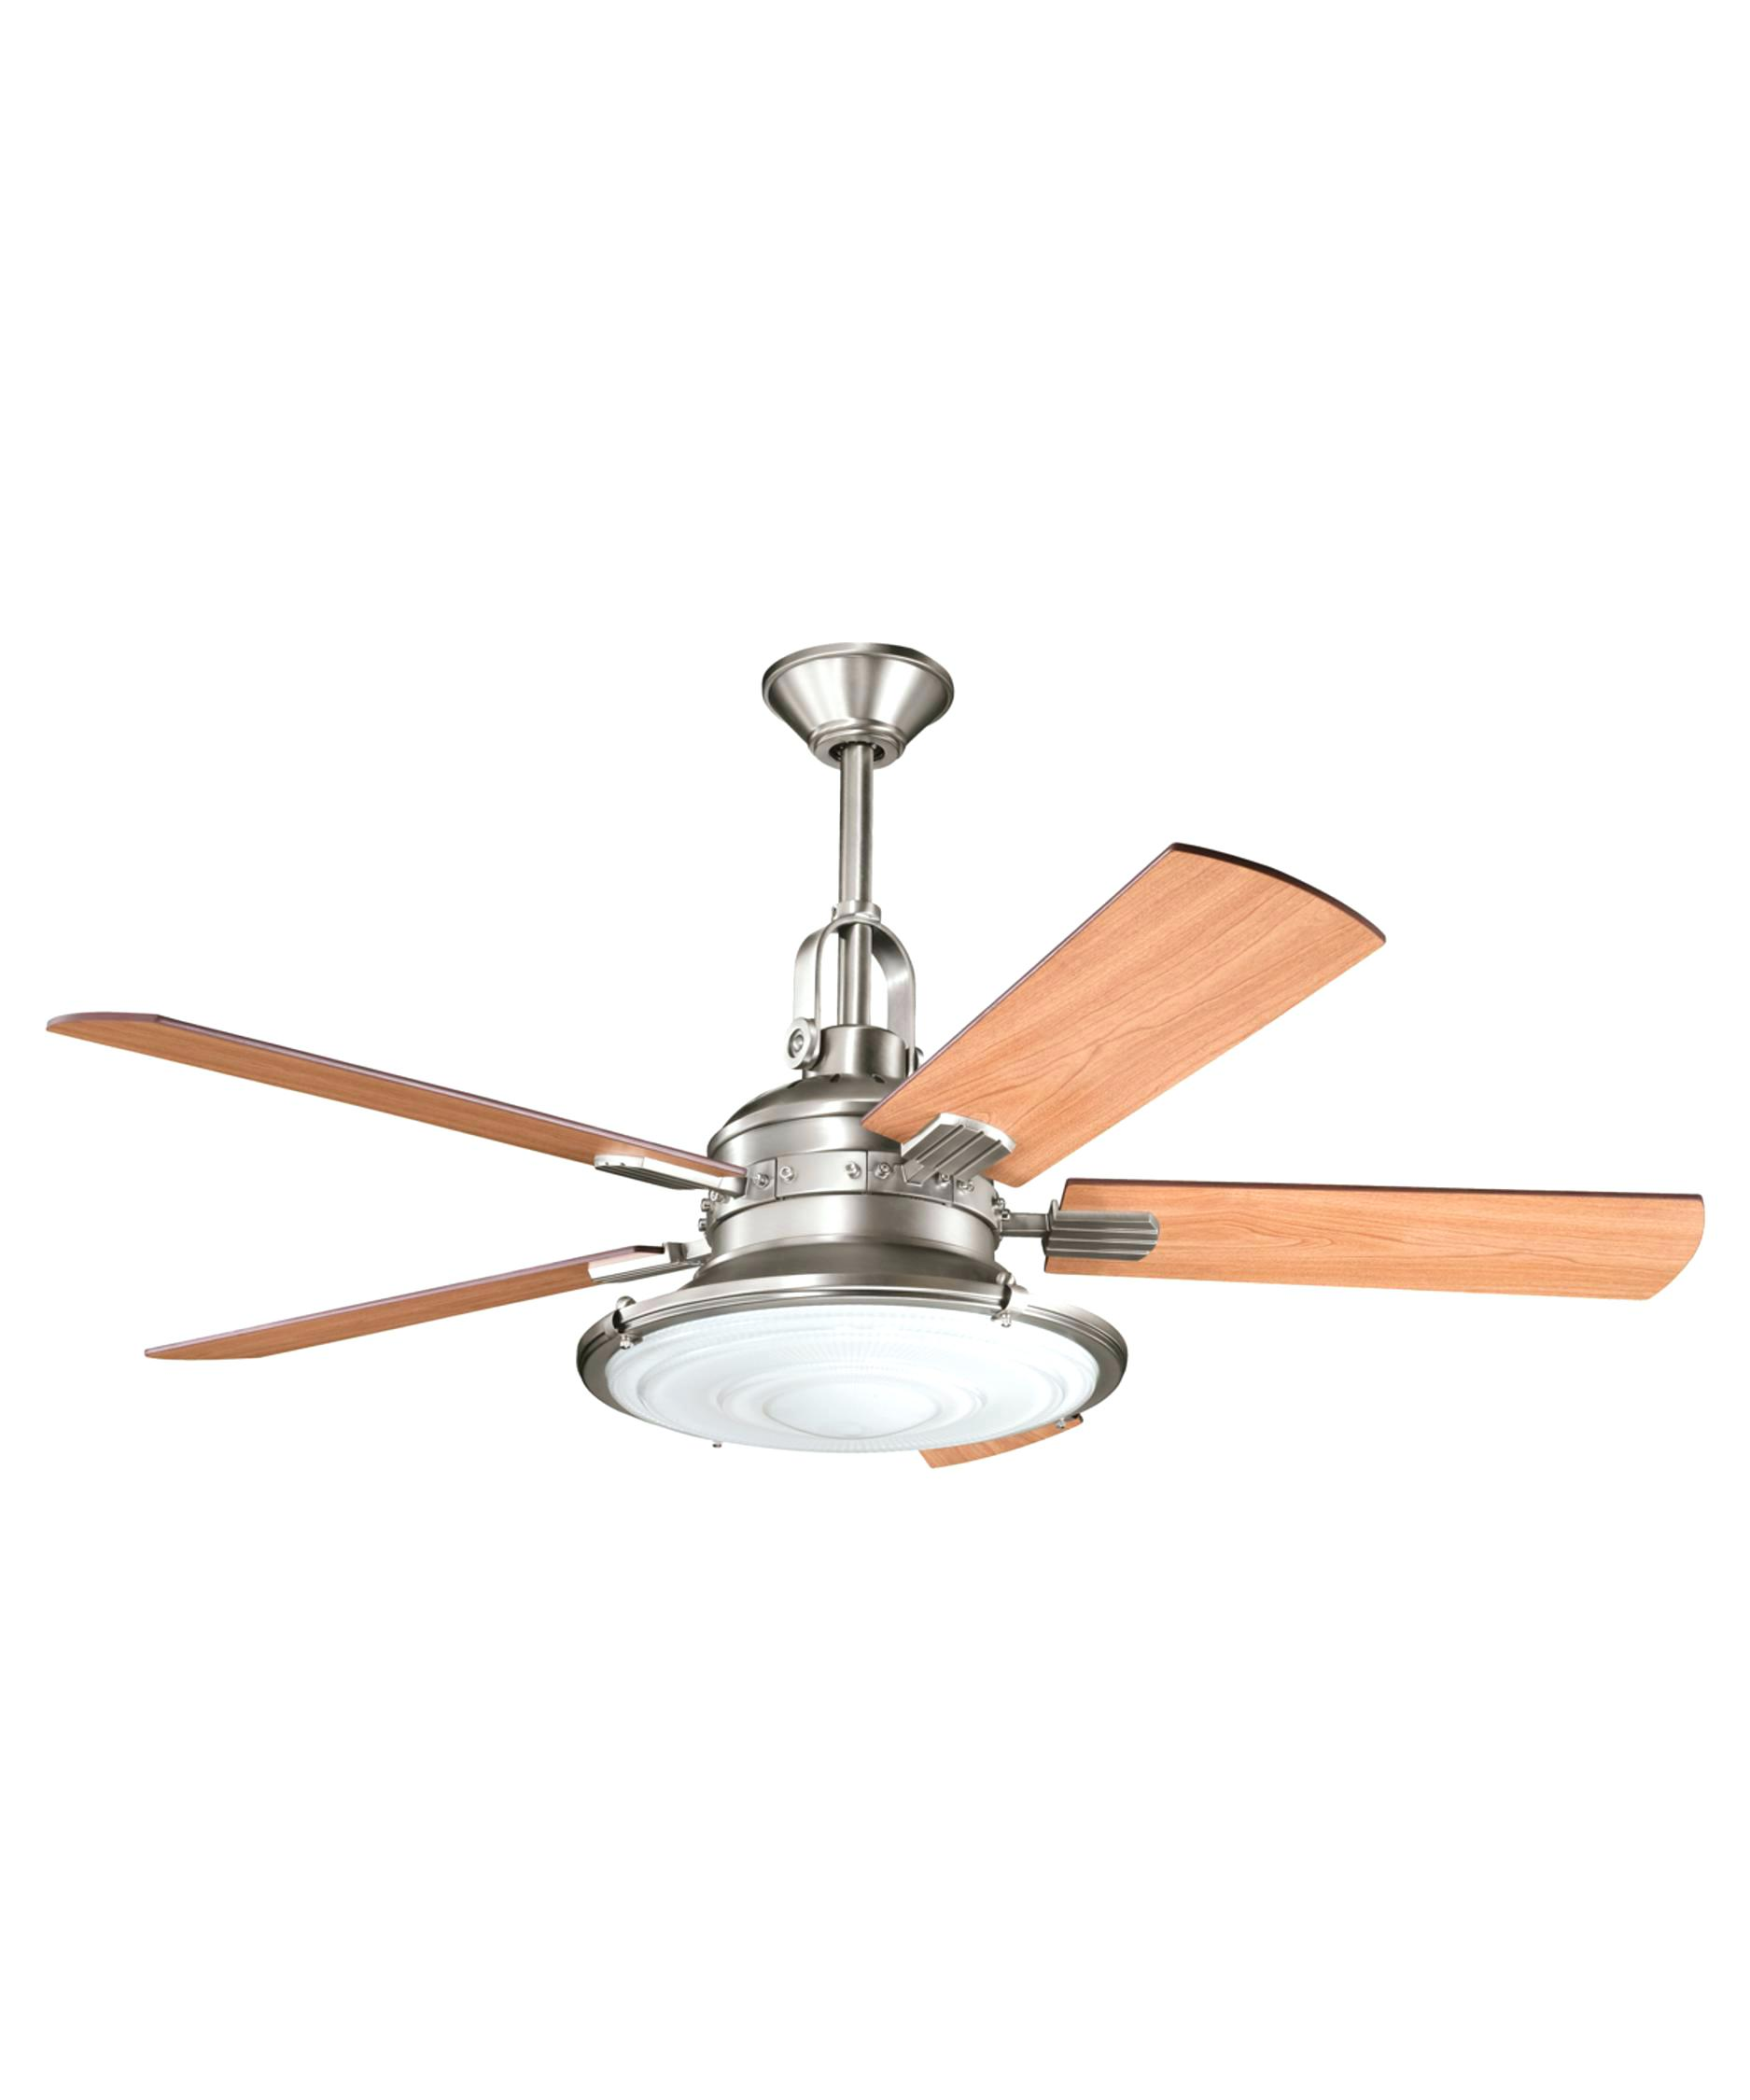 shown and ceiling fan photos rubbed com inspirational clear bathgroundspath fans outdoor glass inch finish of fanimation small galvanized bronze blade oil crestford best in